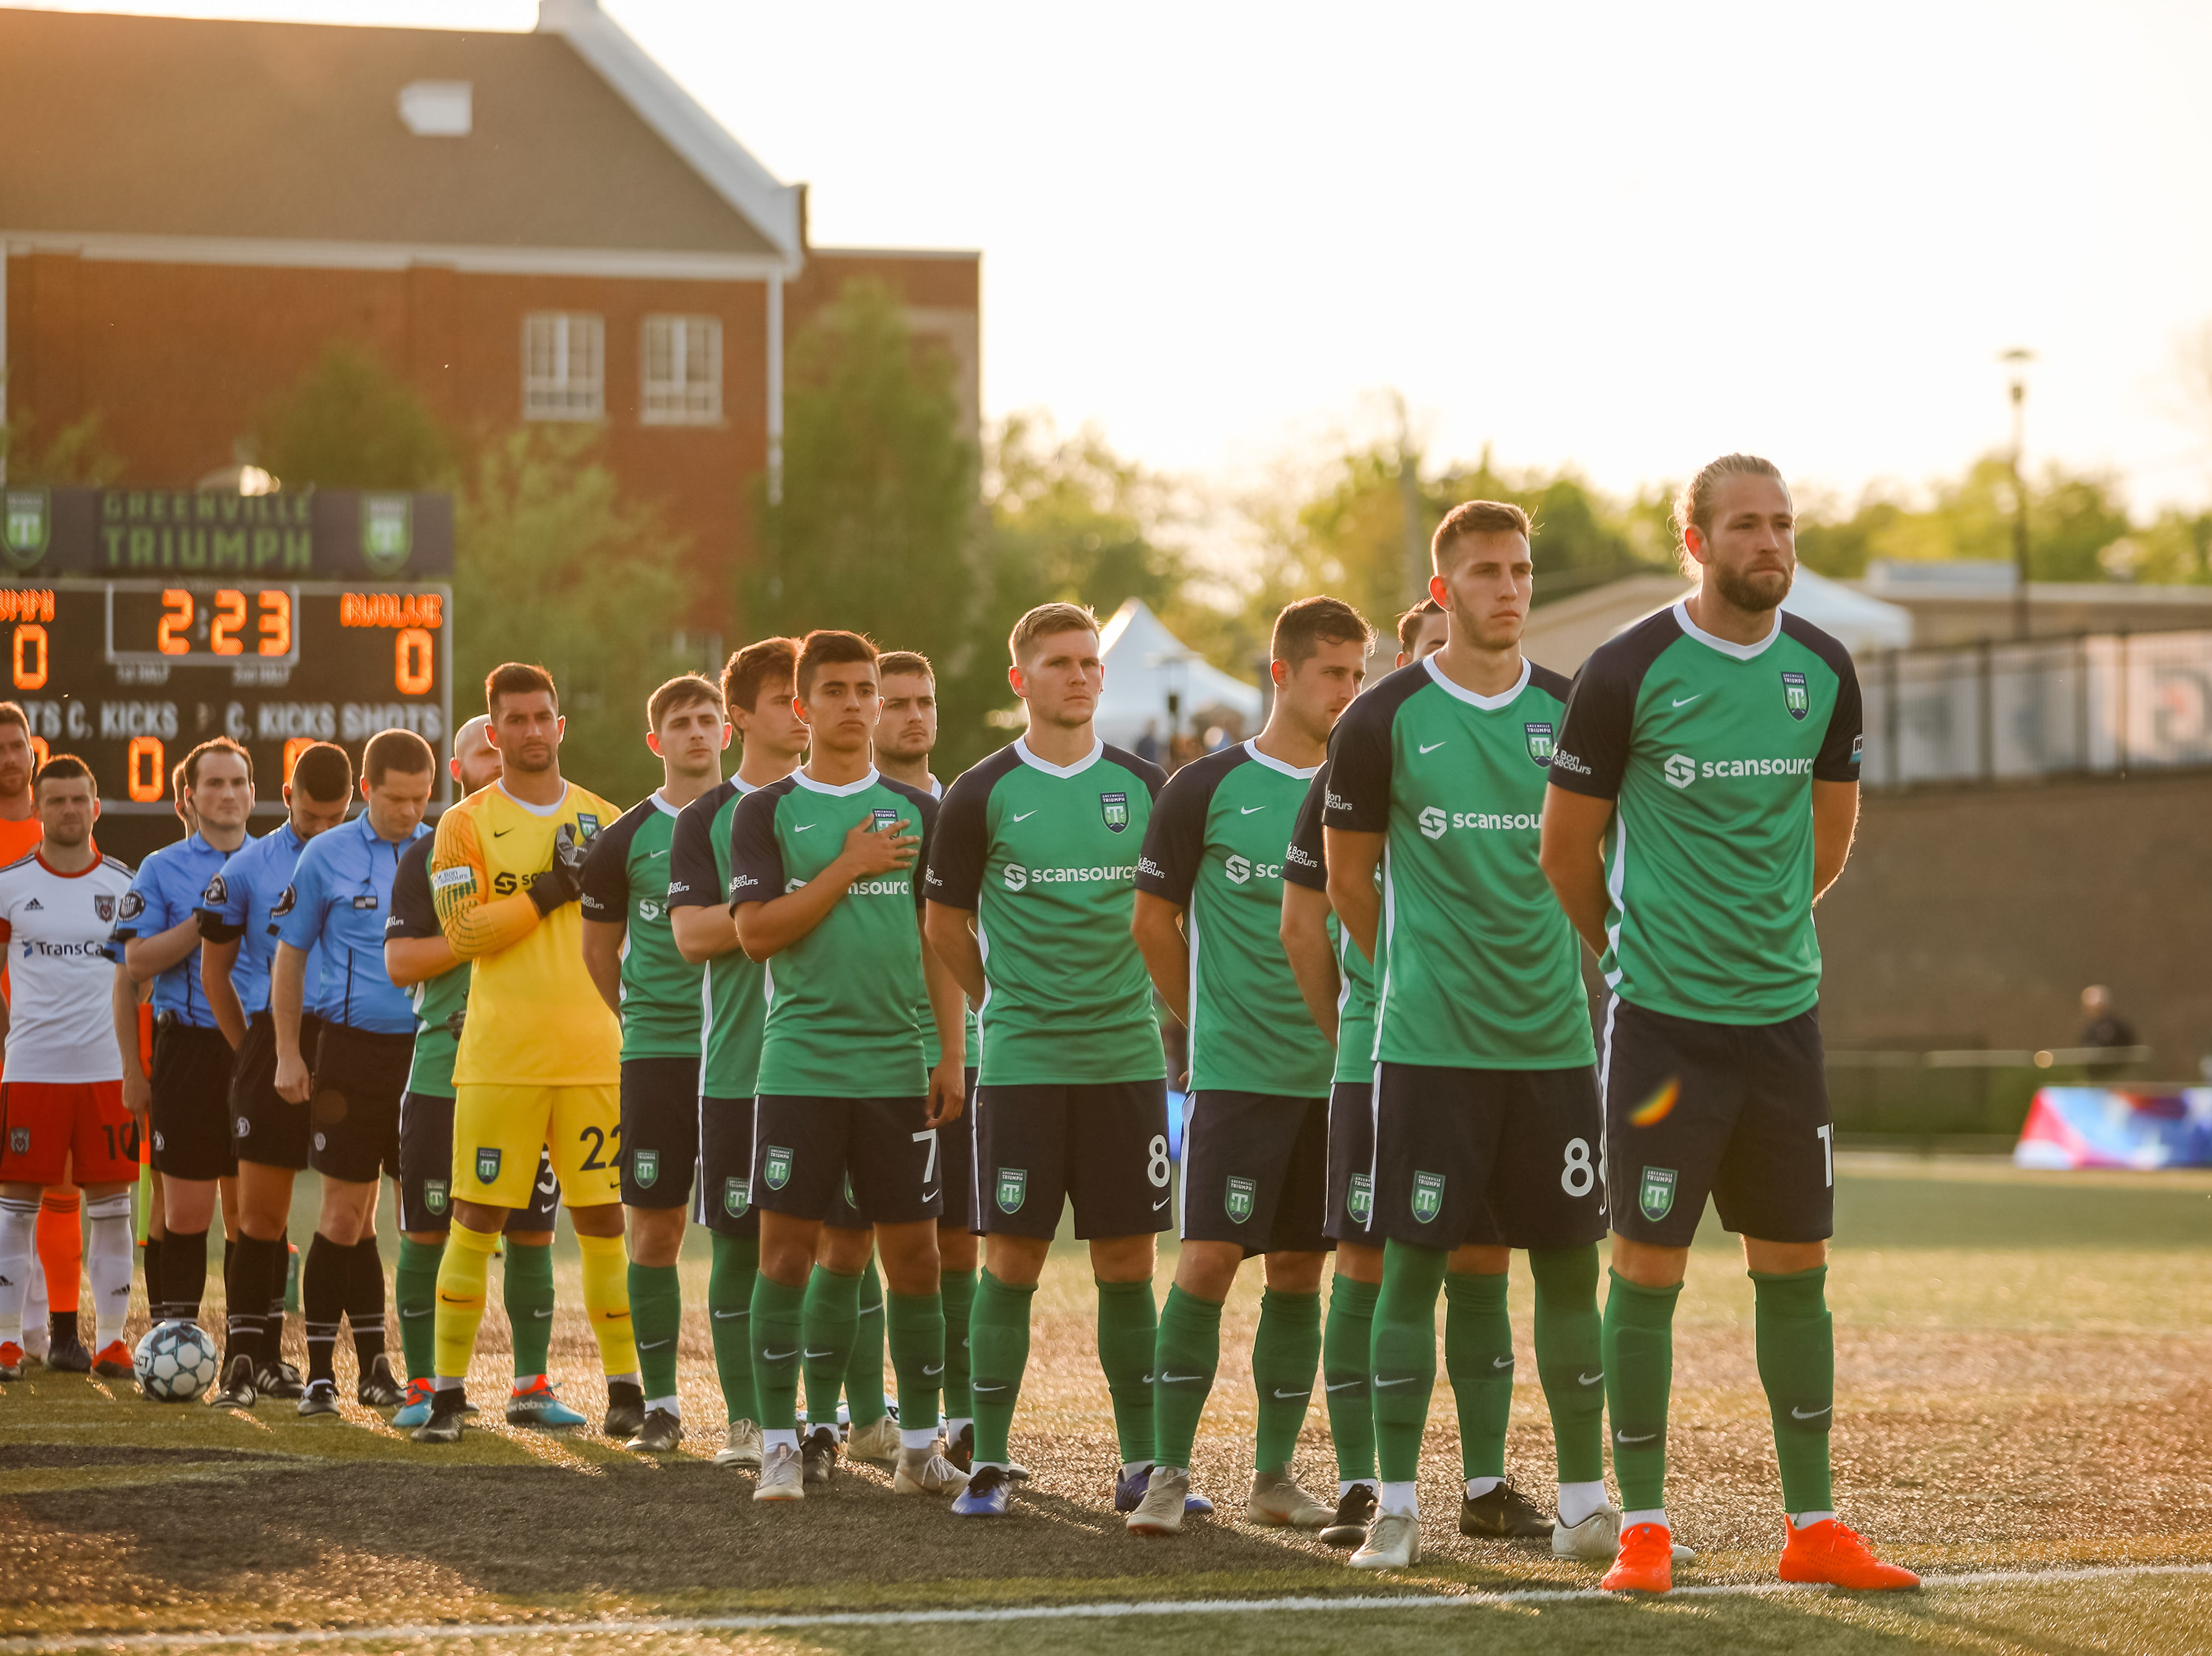 The Greenville Triumph Soccer Club hosted their second home game at Legacy Early College on April 13 at 7 p.m. against the Chattanooga Red Wolves. This season is the team's inaugural season.